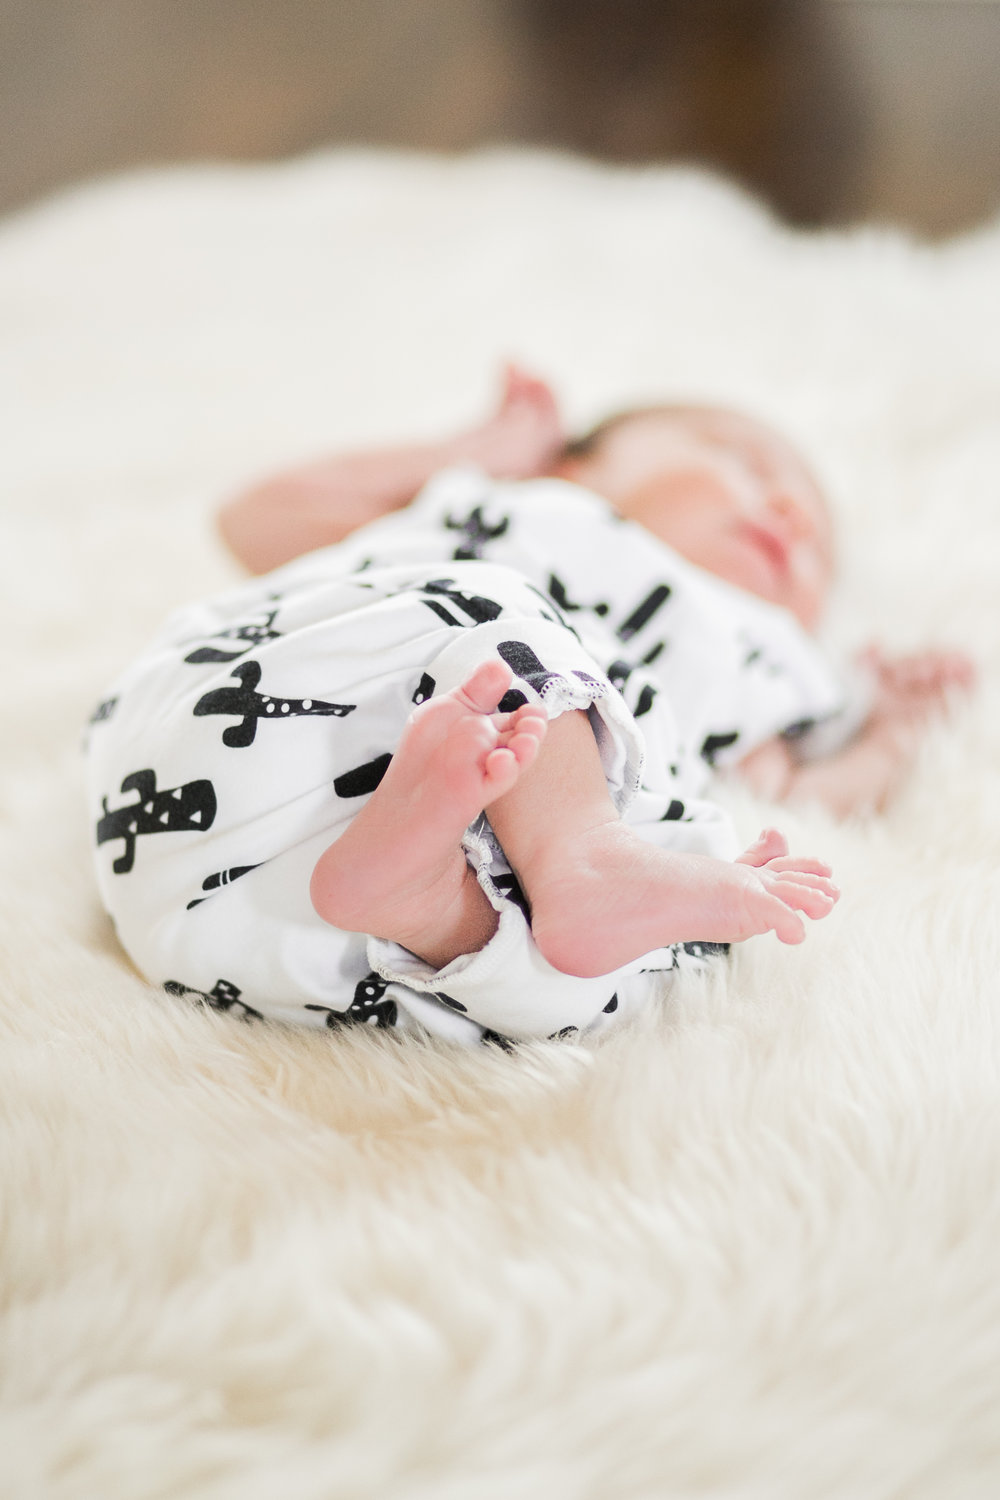 Paxson_Lifestyle_In_Home_Newborn_Session_2017-9.jpg